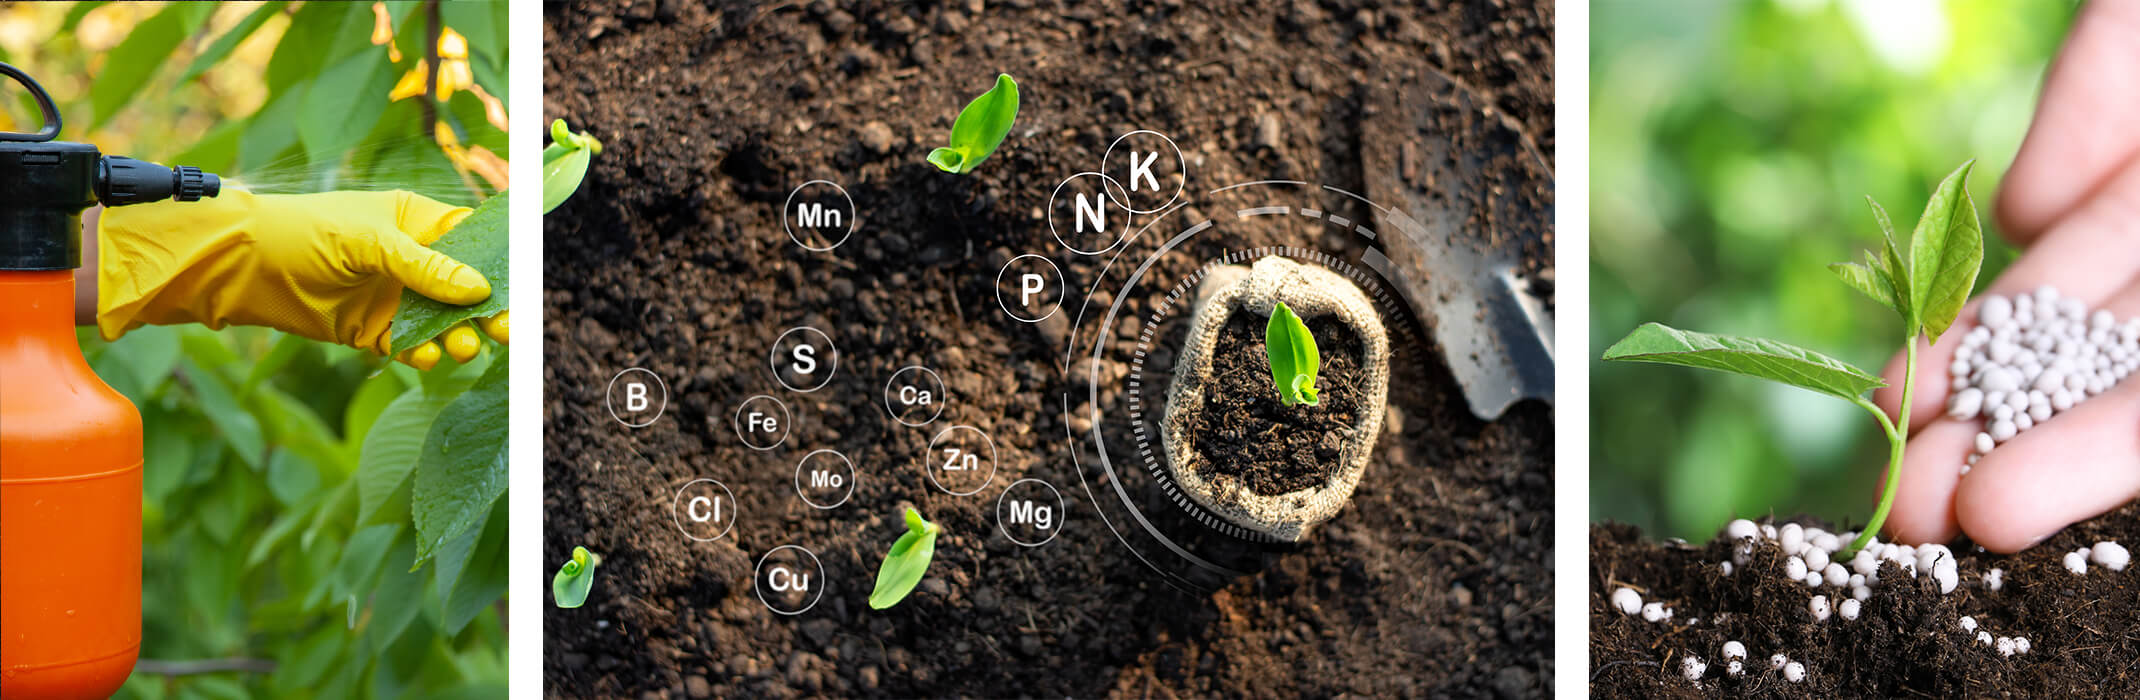 3 images: someone spraying a plant while wearing gloves, new plants planted in fresh soil with one in a burlap sack next to a hand shovel with fertilizer symbols throughout soil, and someone applying round dry fertilizer to a newly planted plant